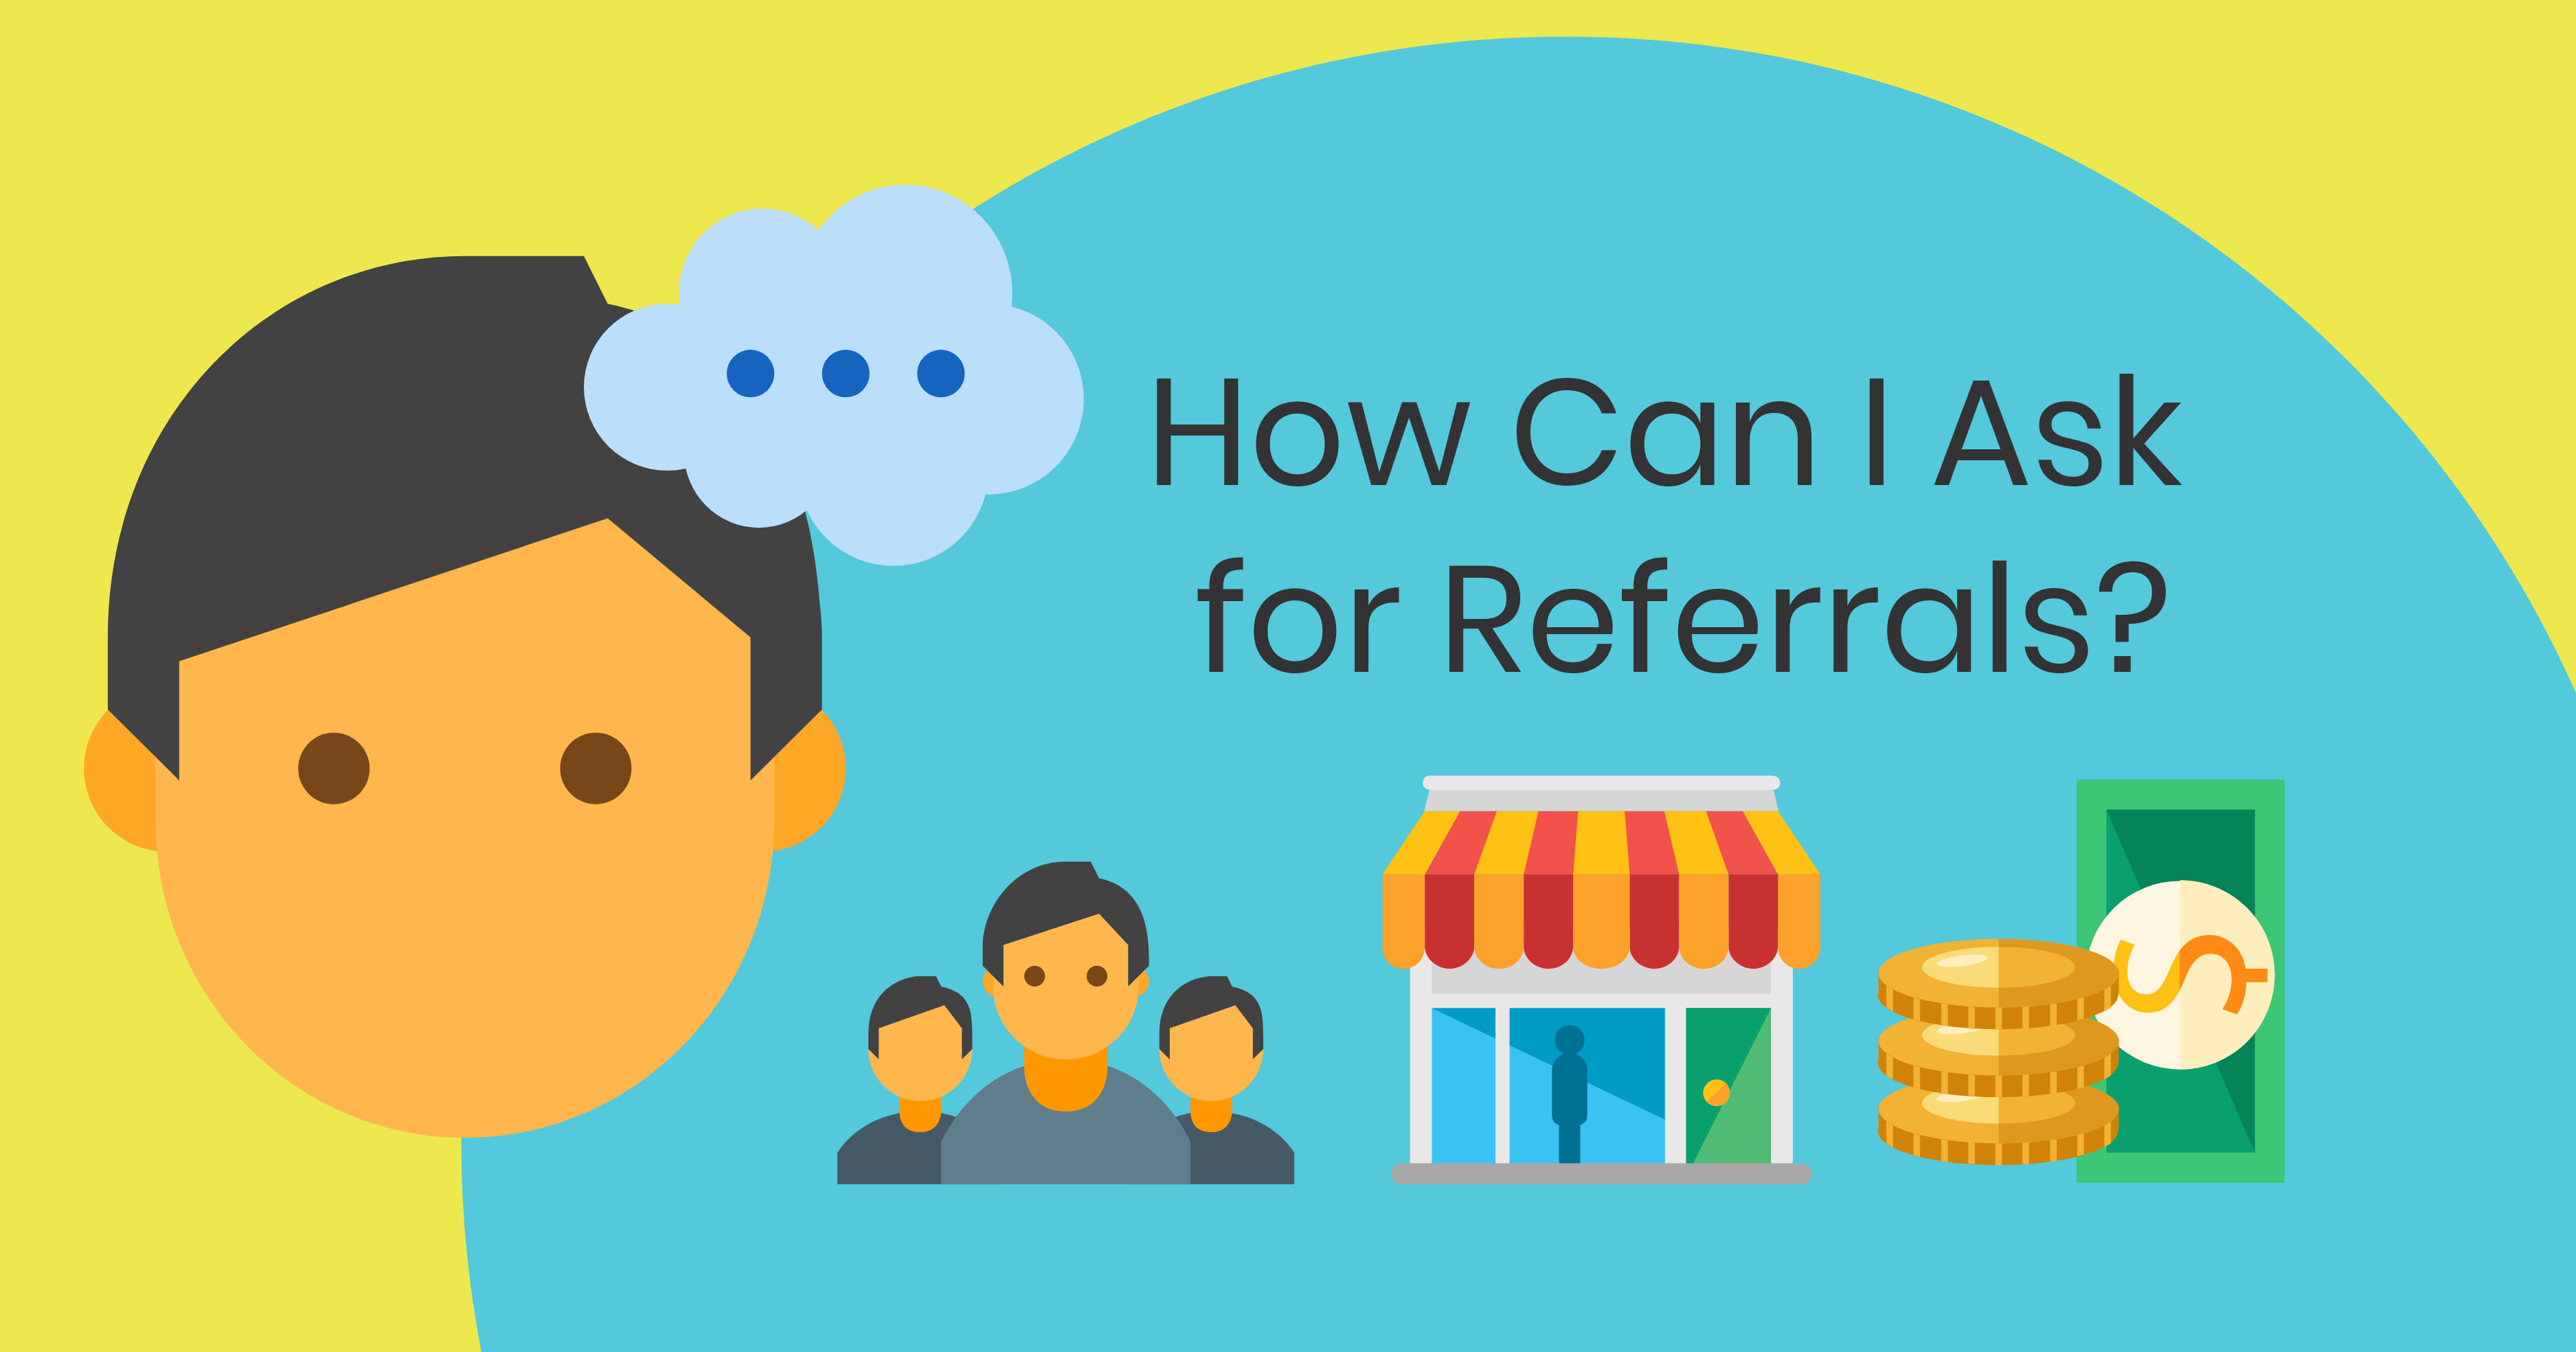 How Can I Ask for Referrals?